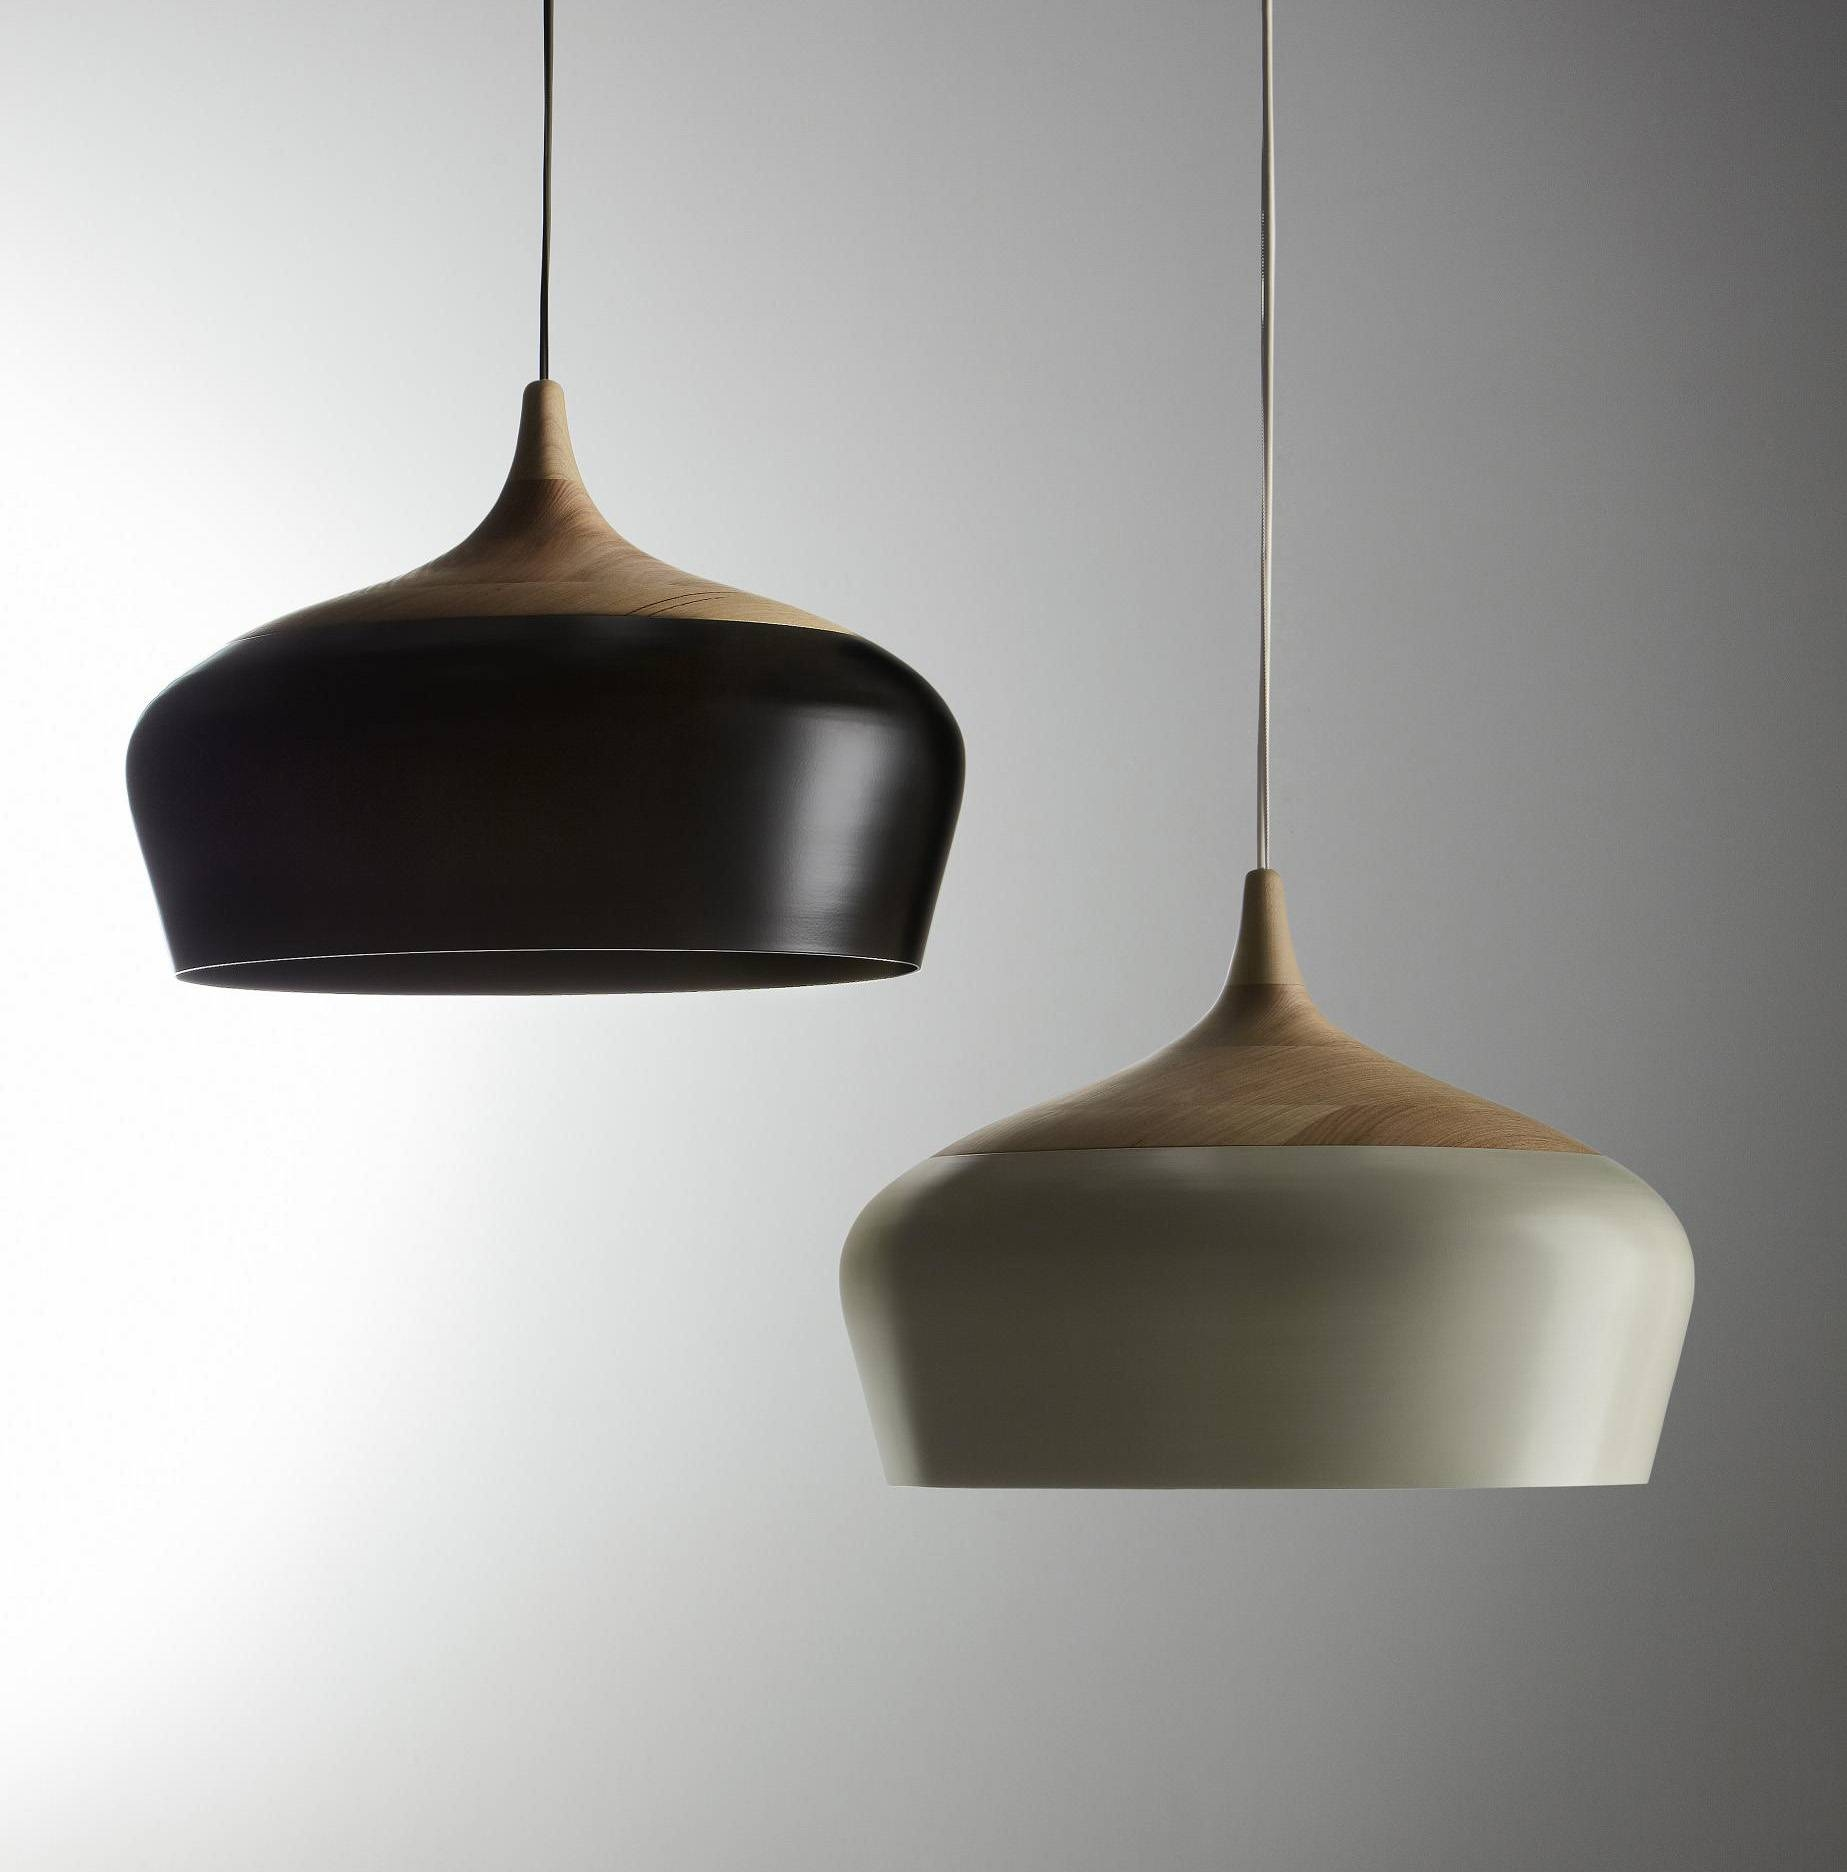 Pendant Lights | Housethe Water. with regard to Pendant Lights Perth (Image 13 of 15)